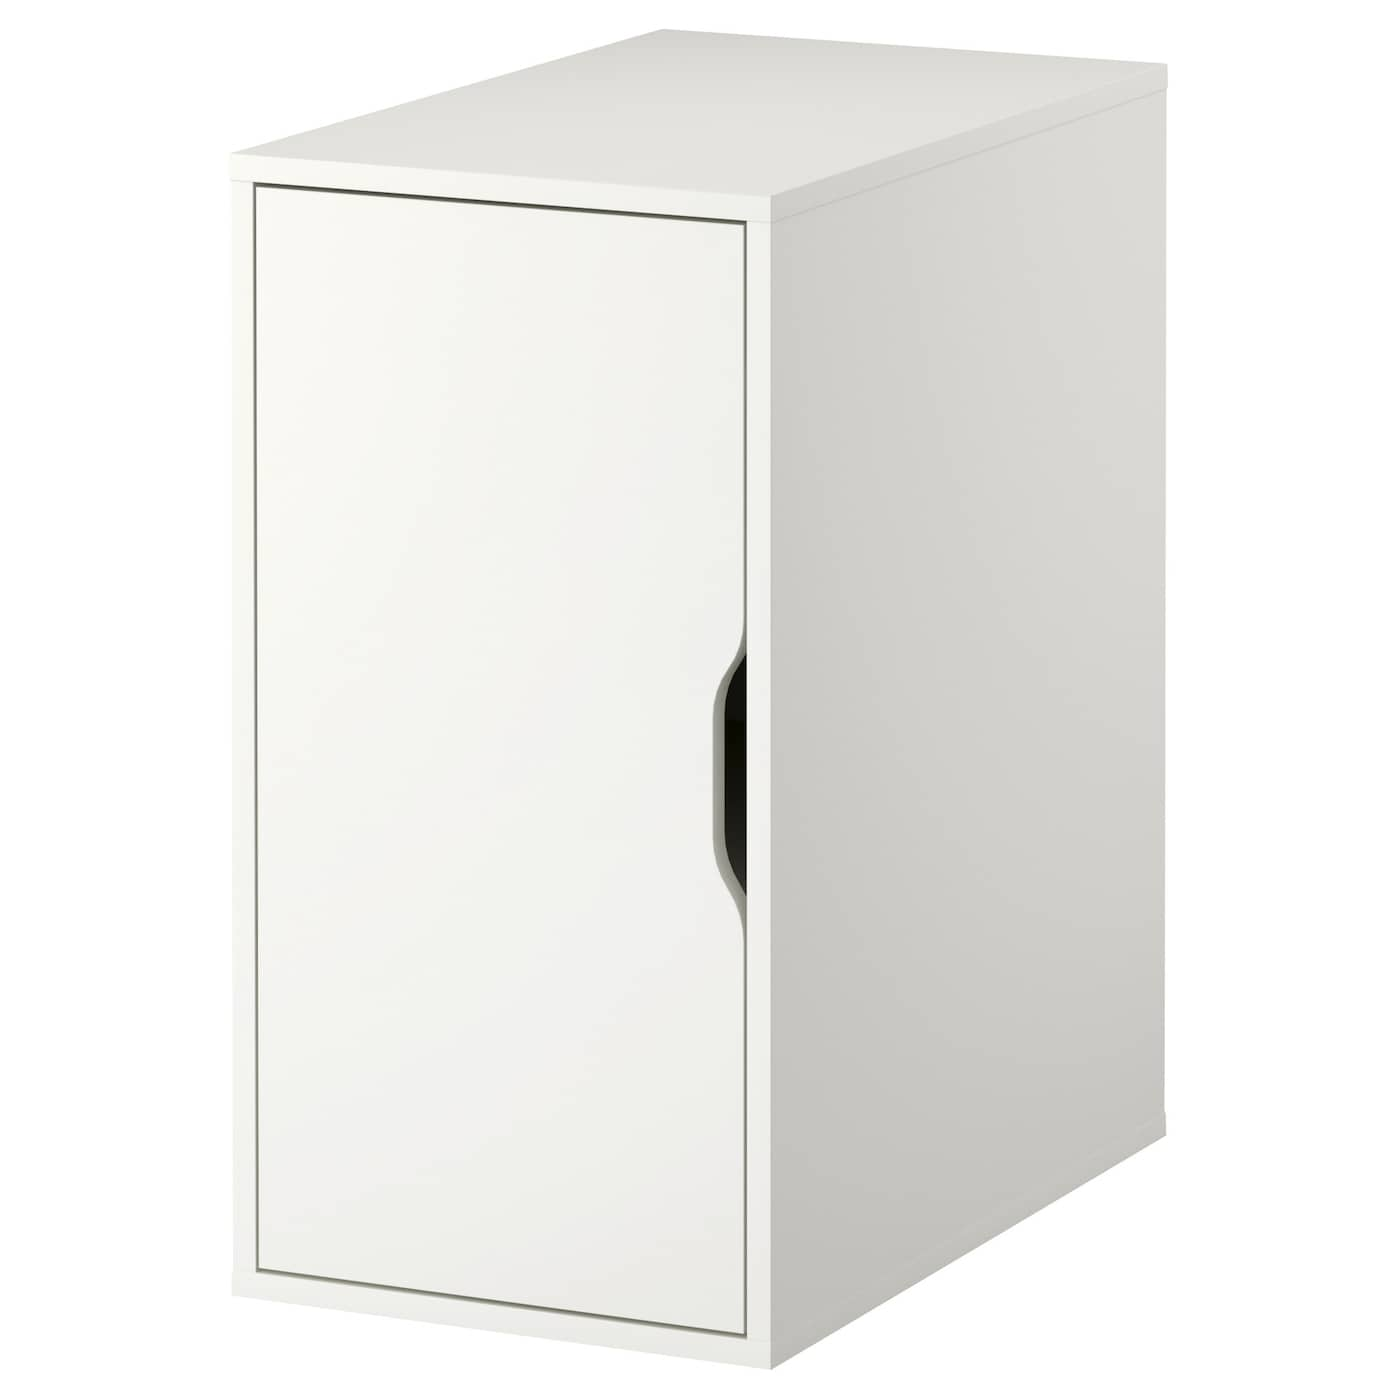 IKEA ALEX storage unit Can be placed in the middle of a room because the back  sc 1 st  Ikea & ALEX Storage unit White 36 x 70 cm - IKEA